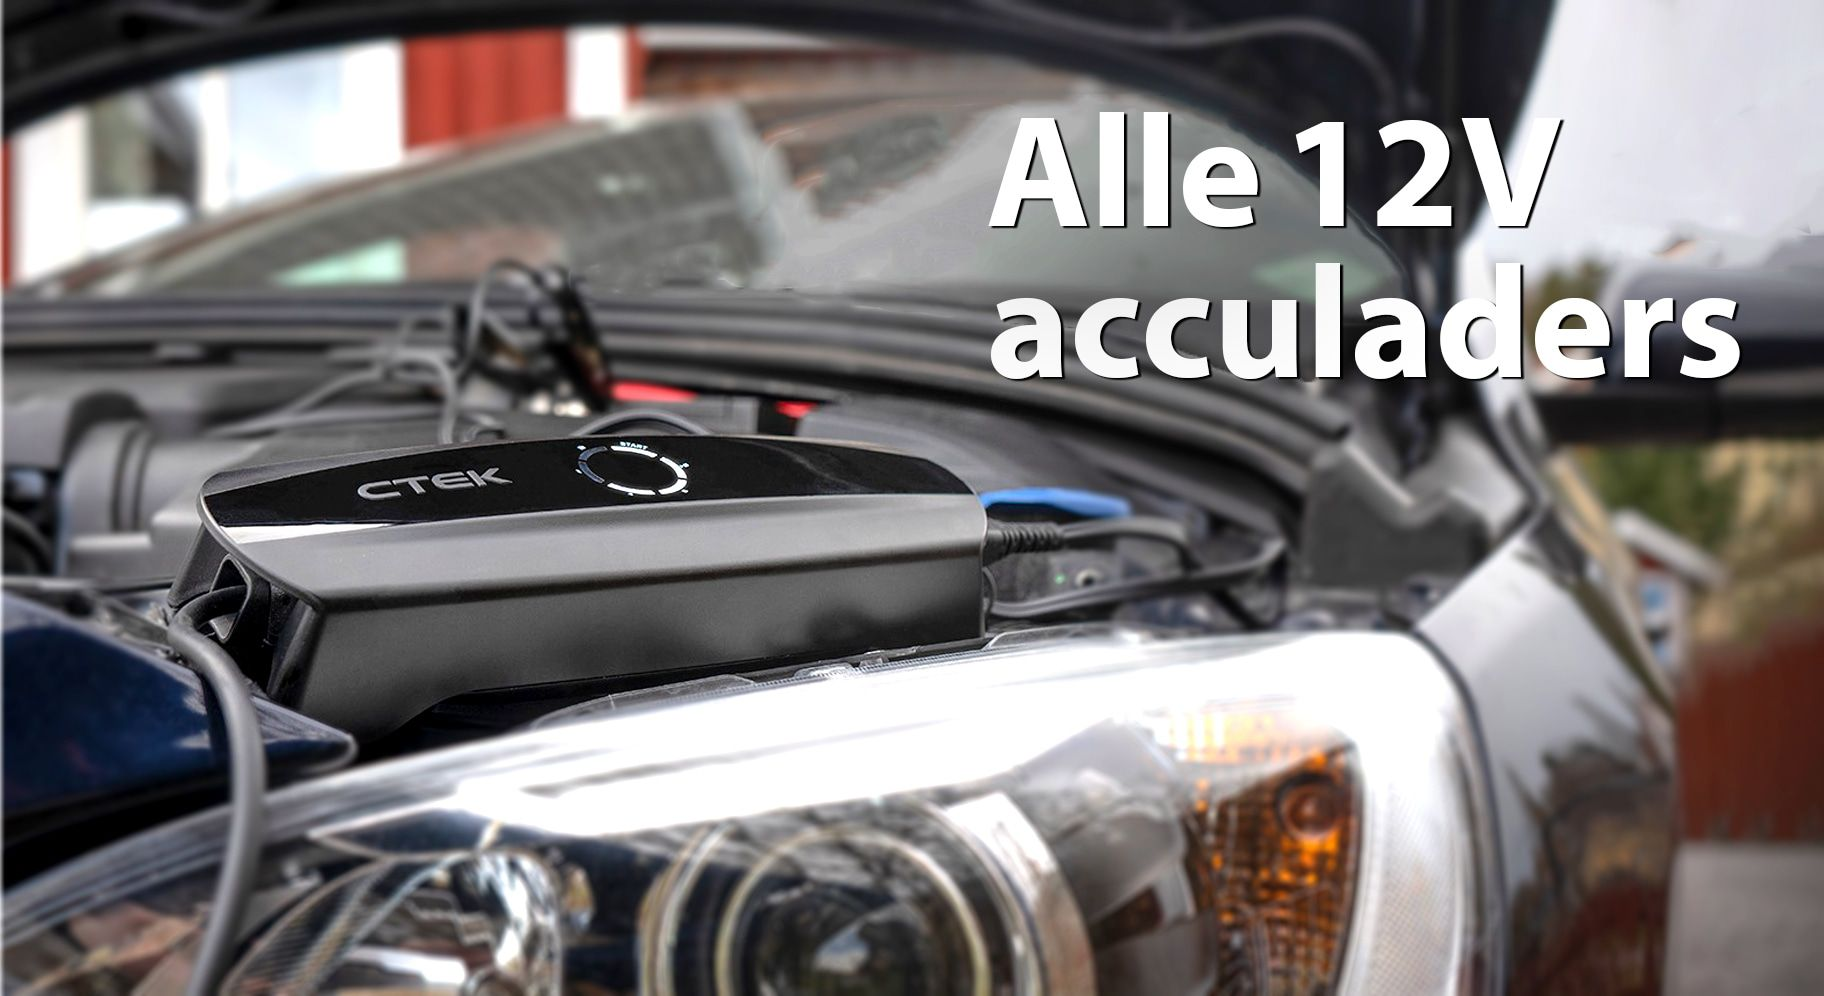 12V acculaders